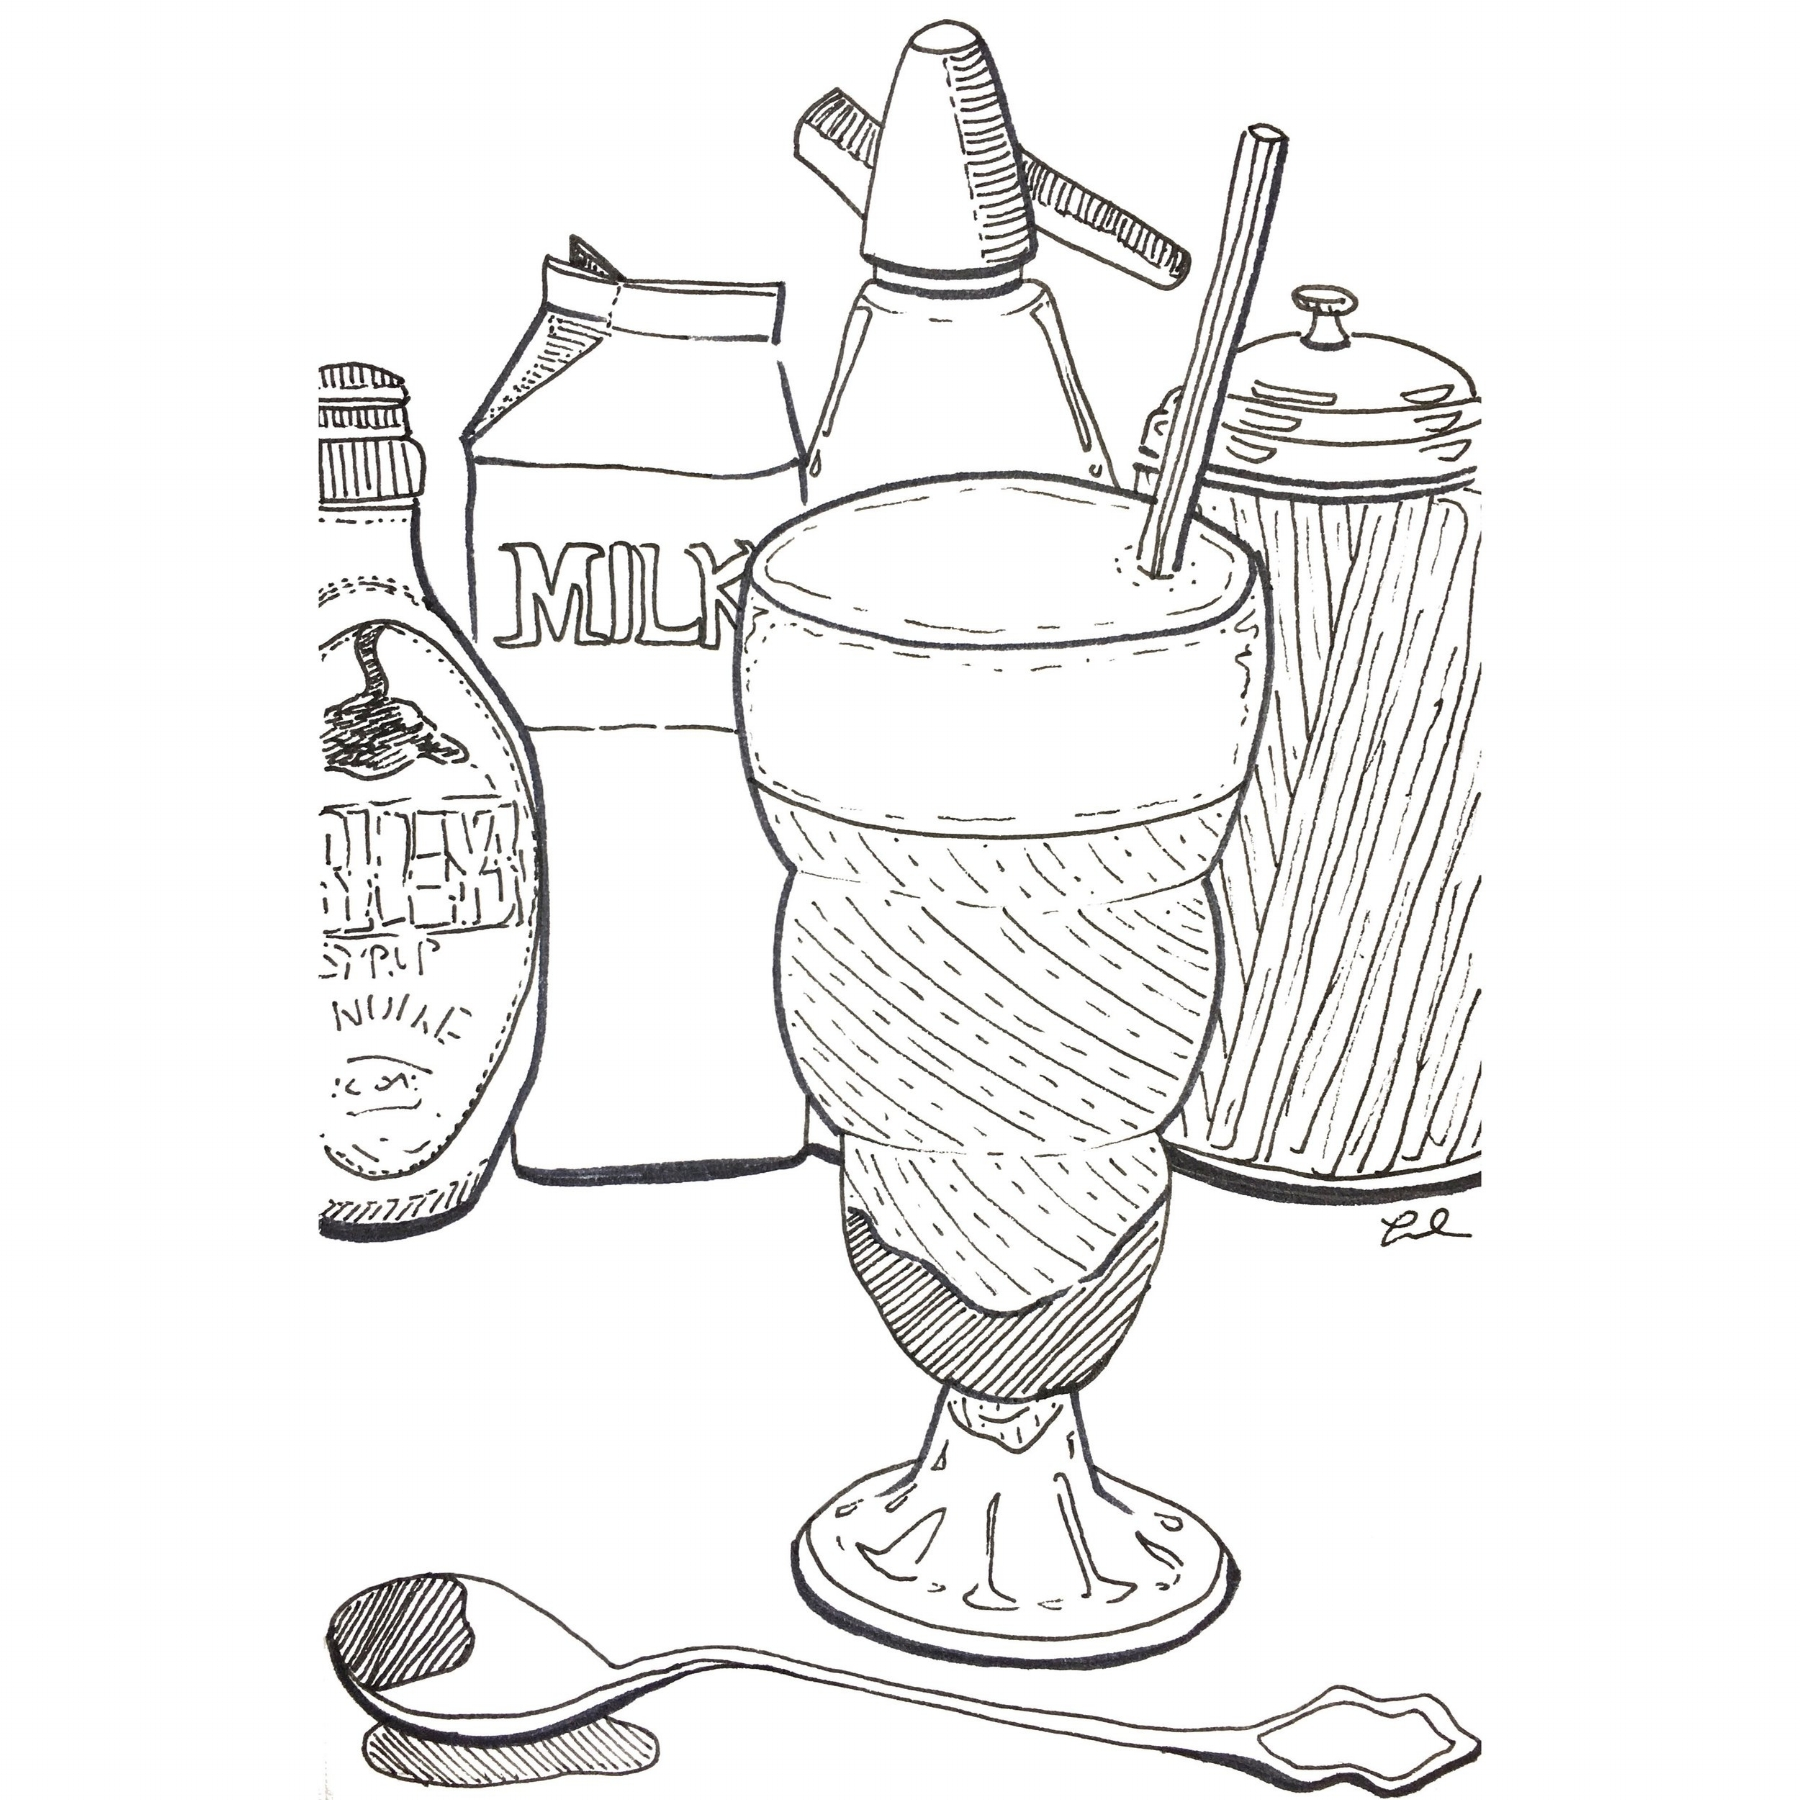 egg cream to post.JPG